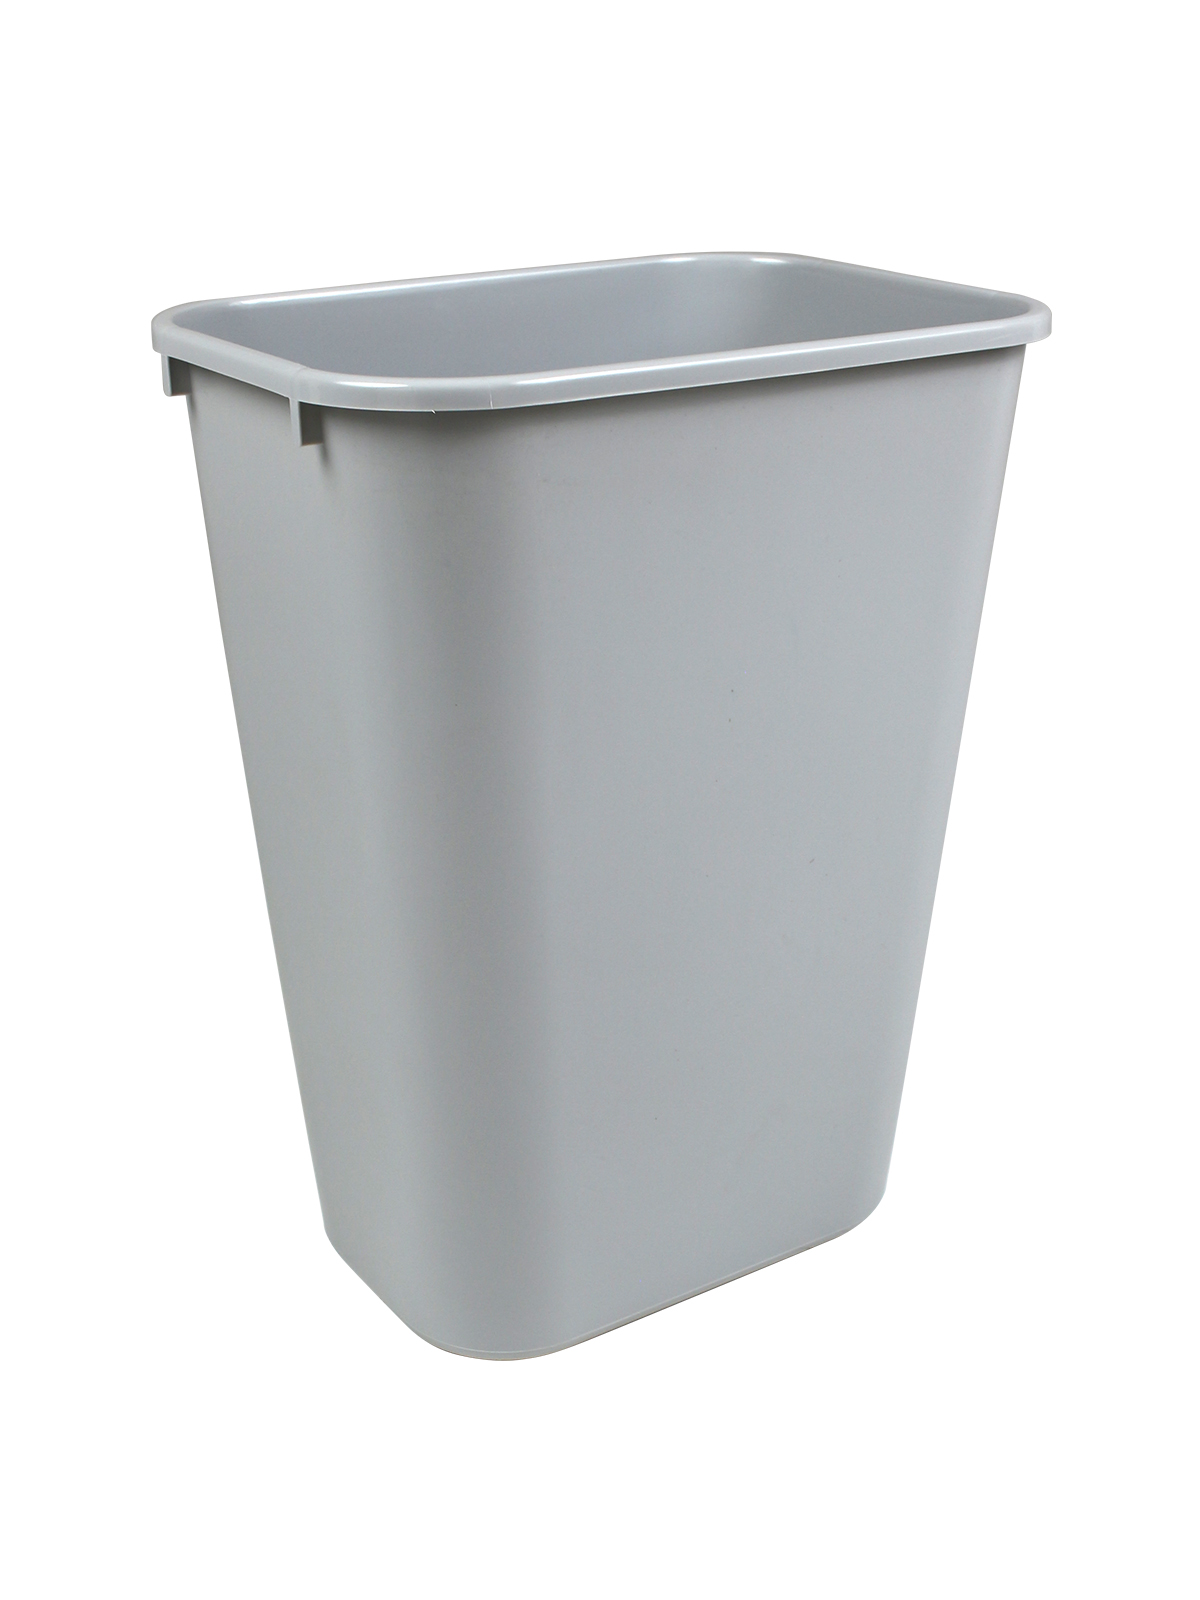 RECYCLING & WASTE BASKET - Single - Body - 41 Q - Executive Grey